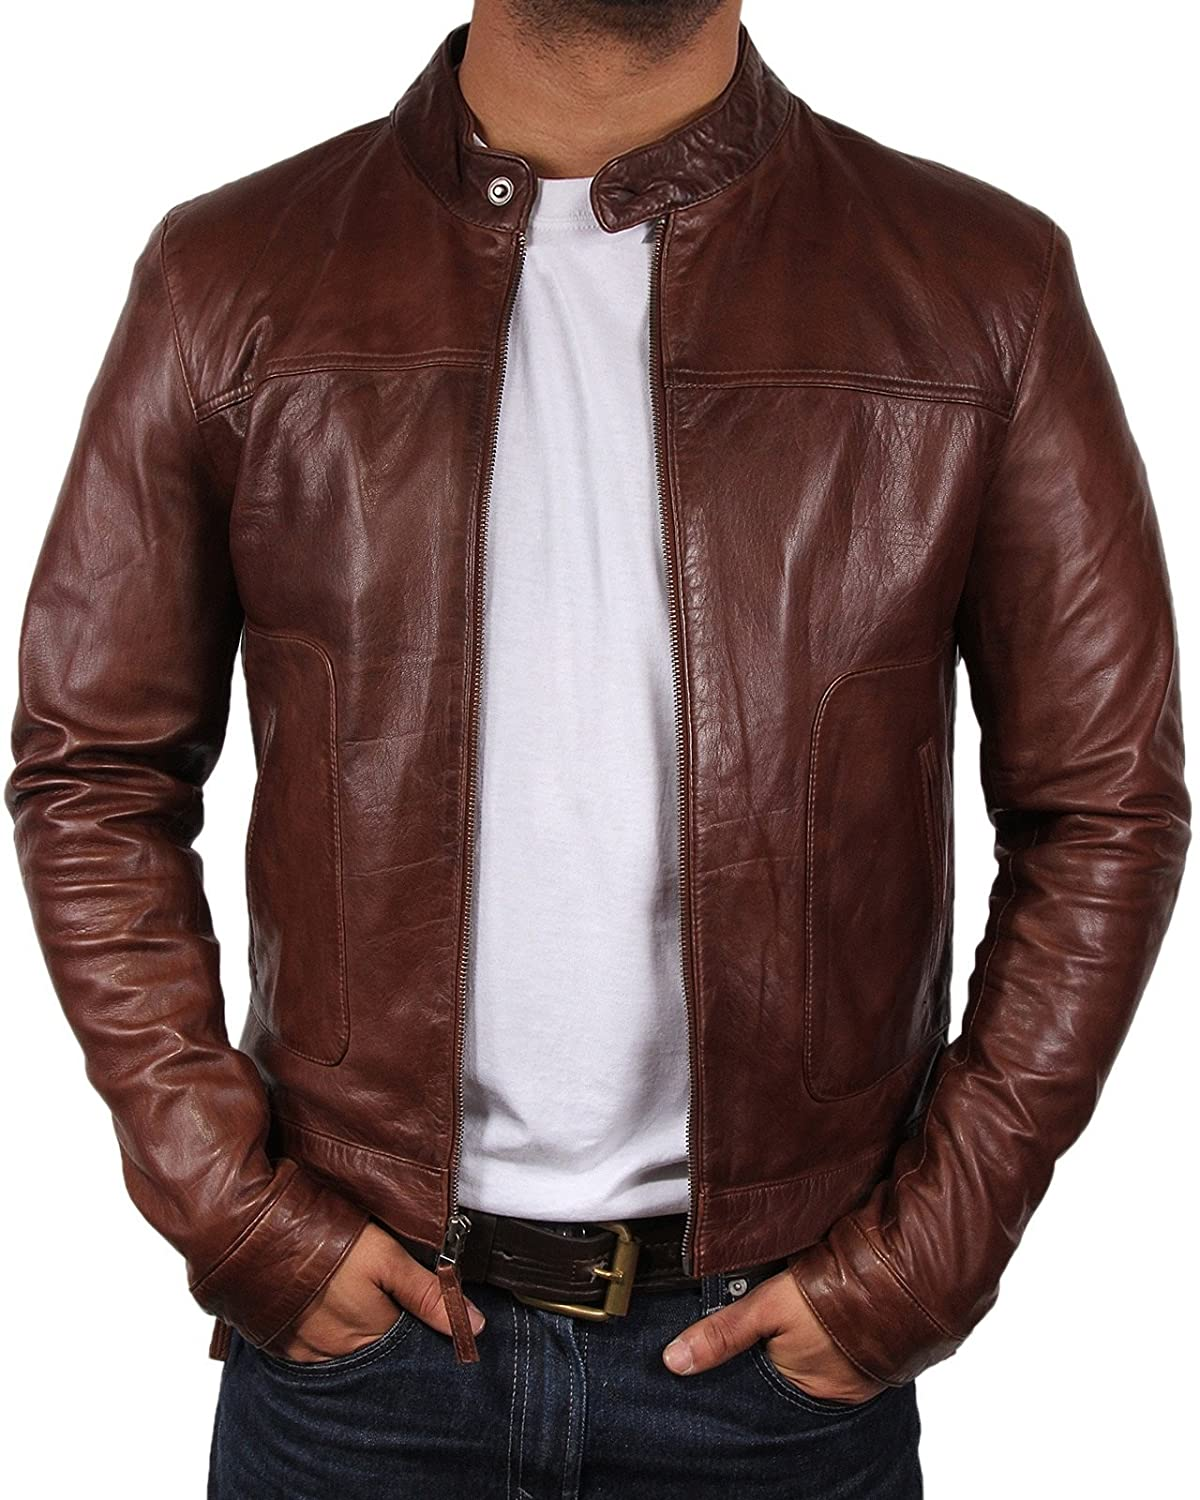 Mens Leather Biker jacket Brown Brand New Real Leather Coat ...